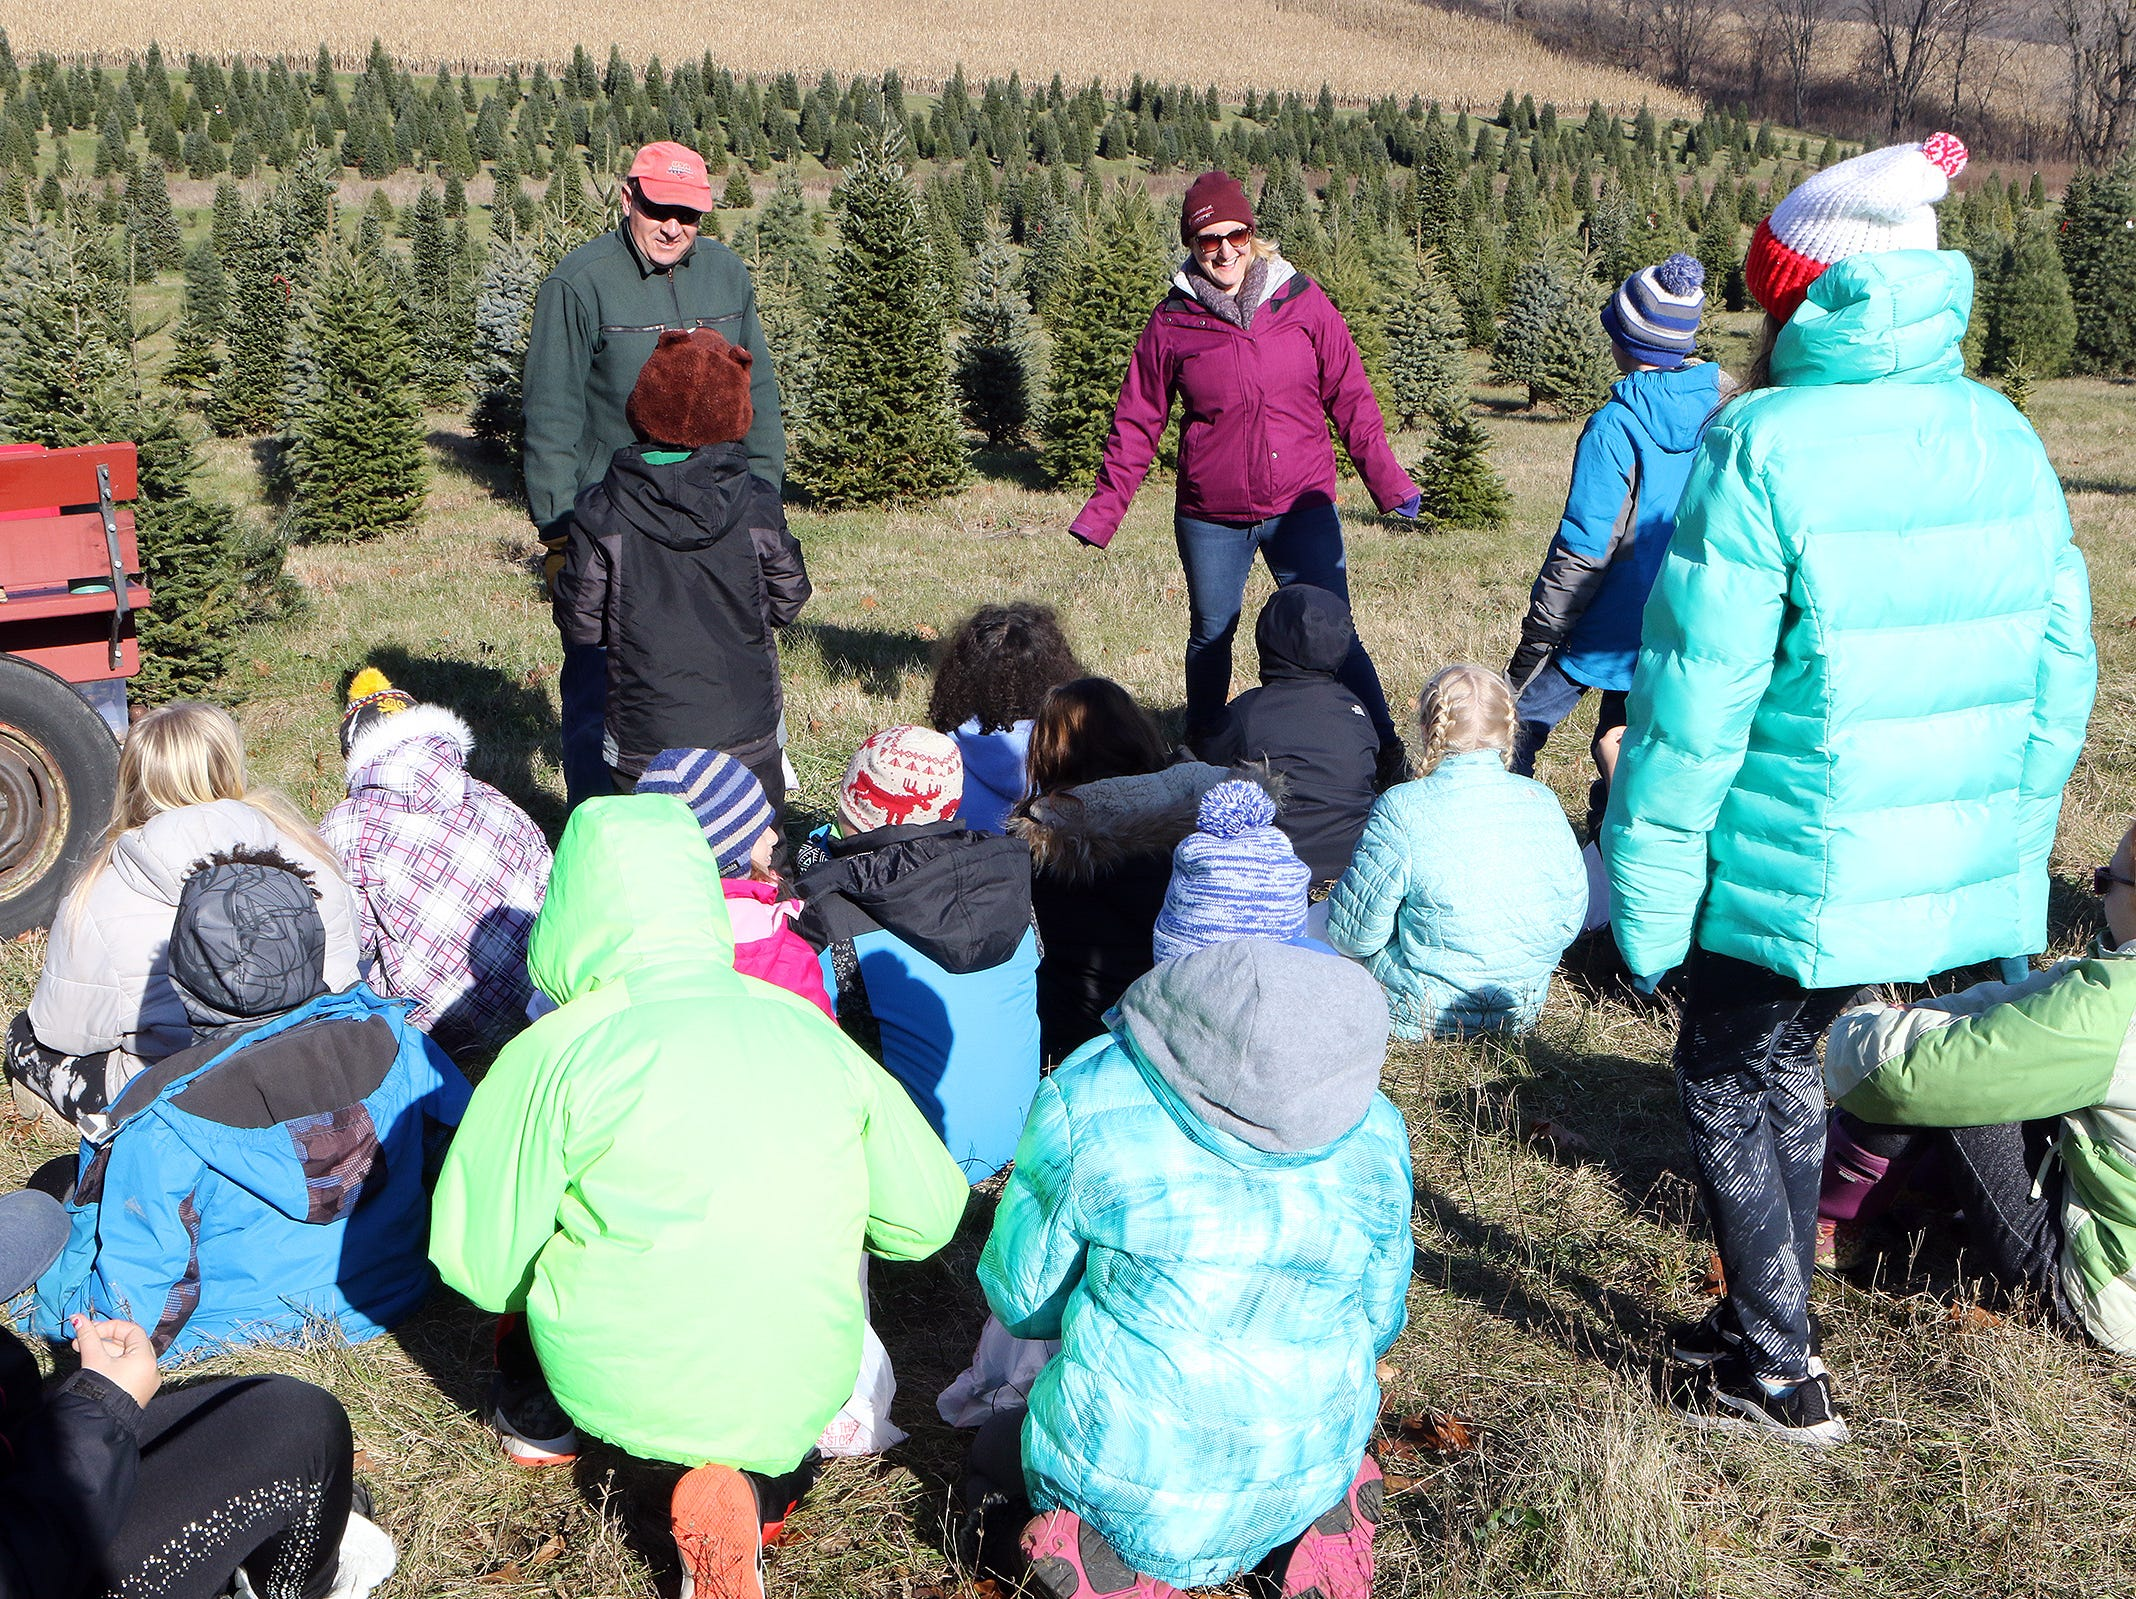 New Glarus and Albany fourth and fifth grade students visit an education station during a visit to Lancaster's Winterberry Tree Farm in Brooklyn to learn about the Christmas tree industry on Nov. 15.